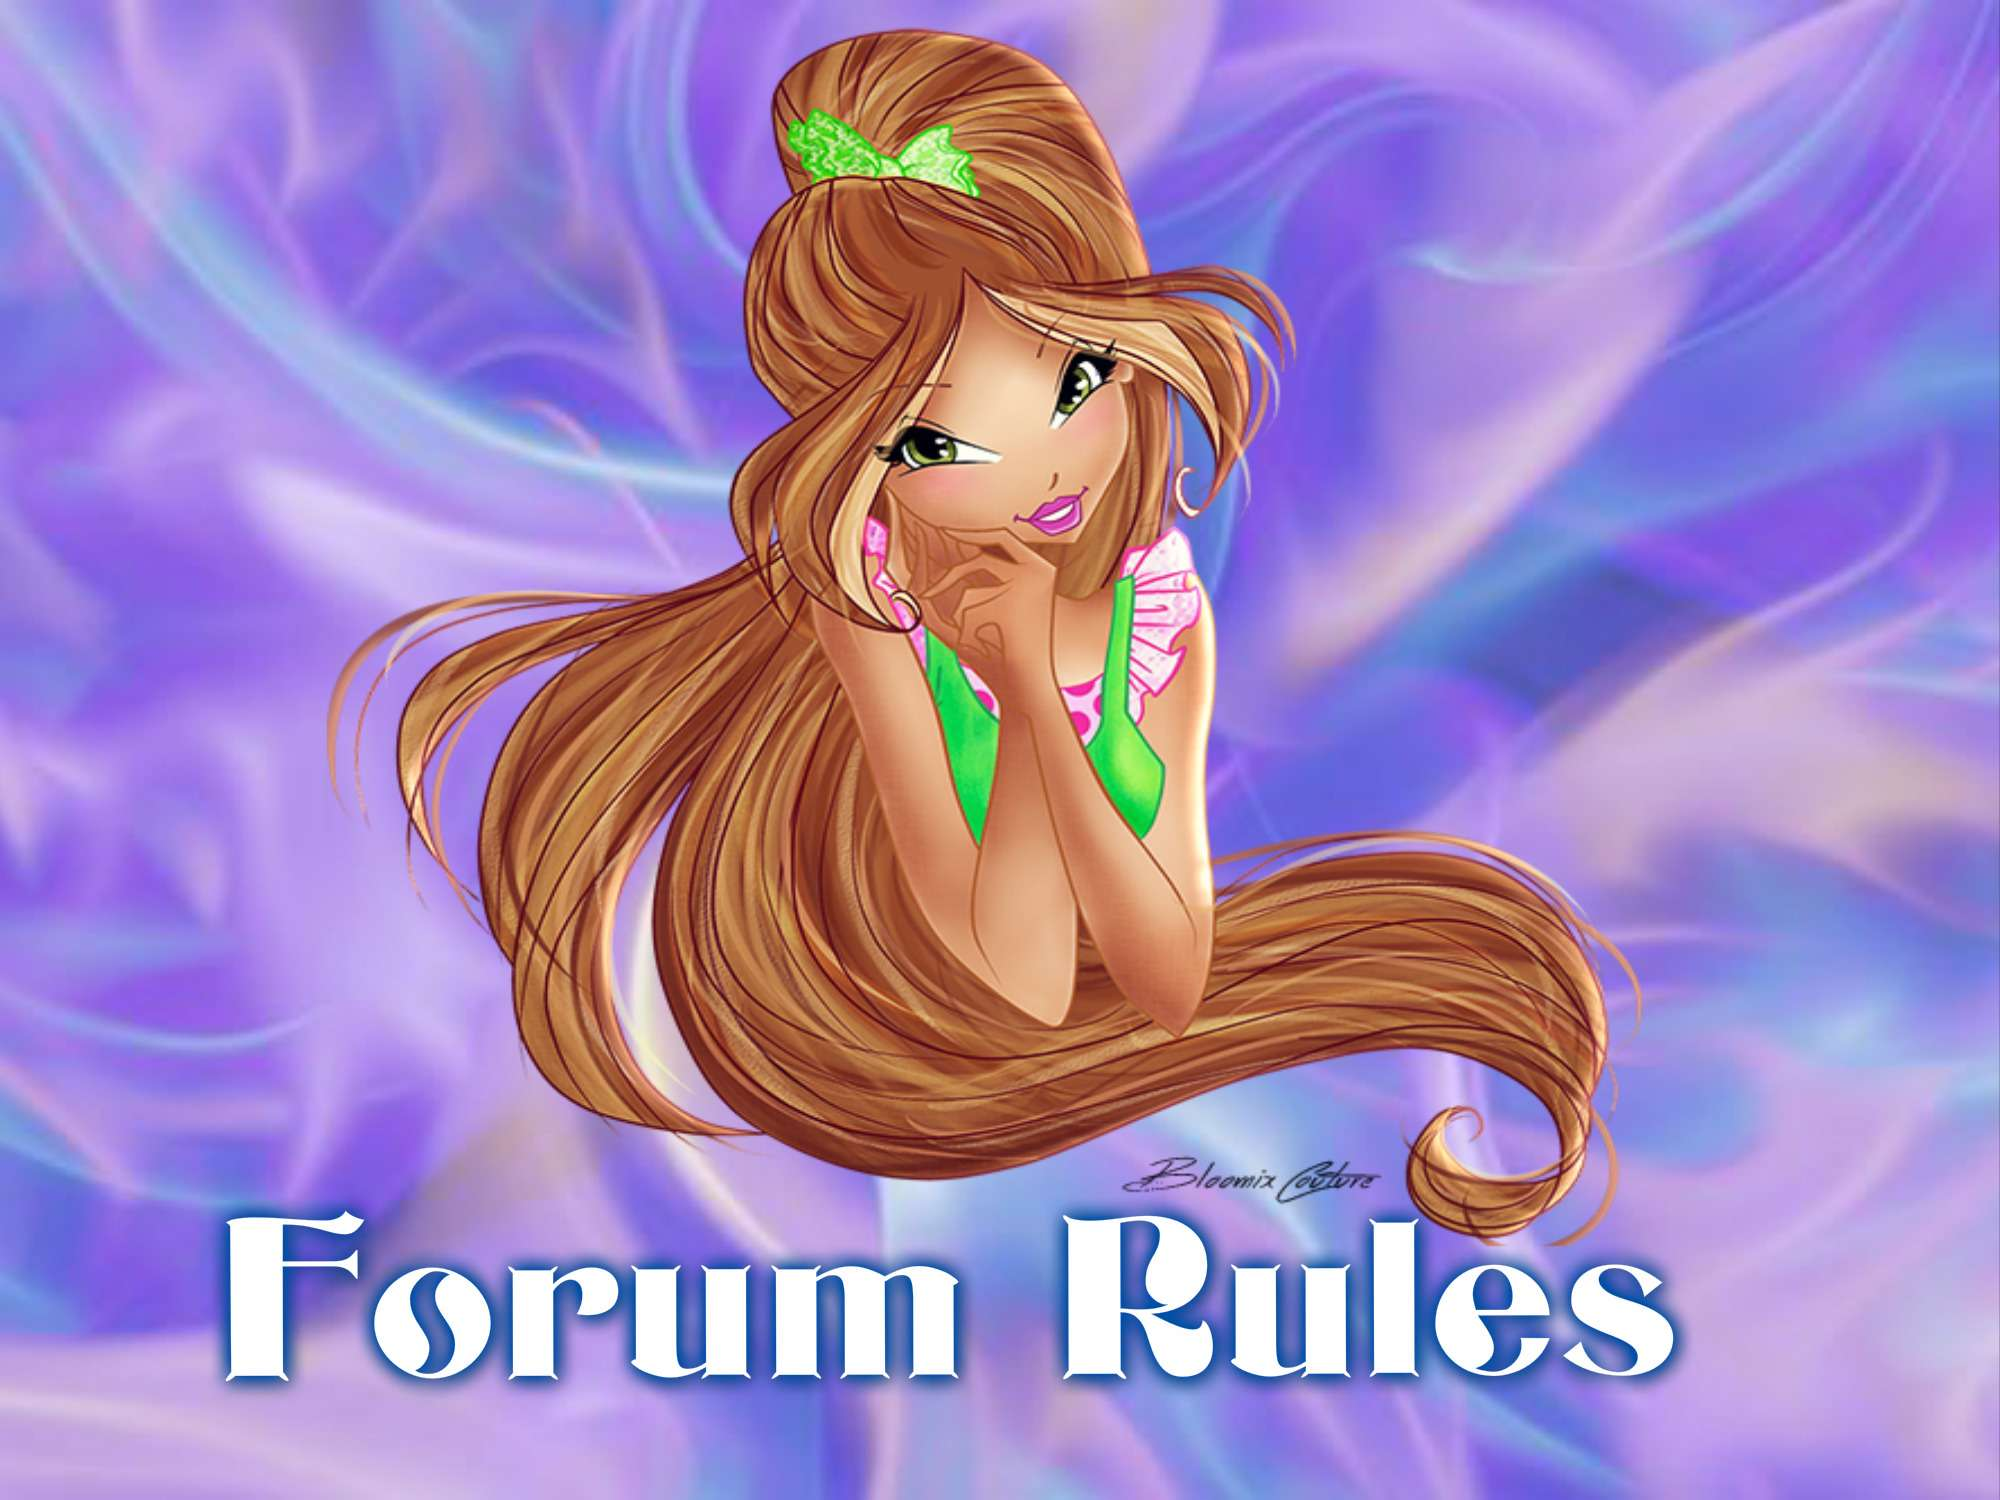 Forum Rules Pizap_24